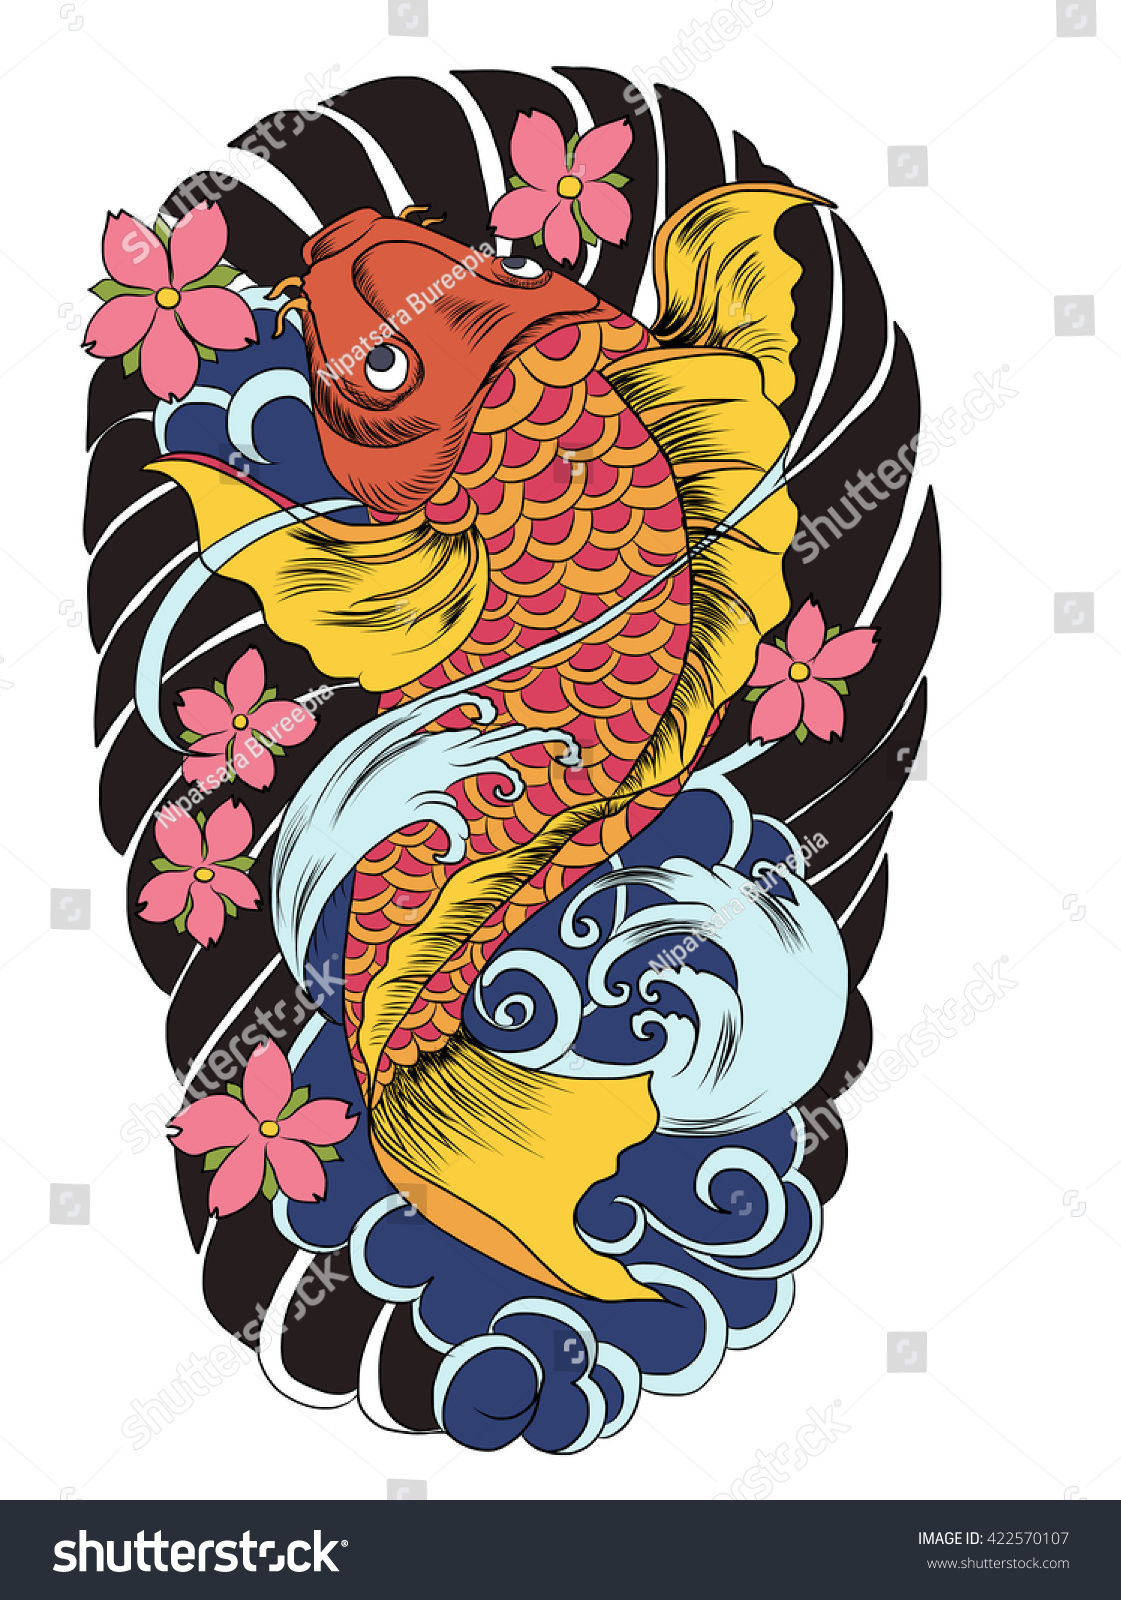 hand drawn koi fish tattoo stock vector 422570107 shutterstock. Black Bedroom Furniture Sets. Home Design Ideas